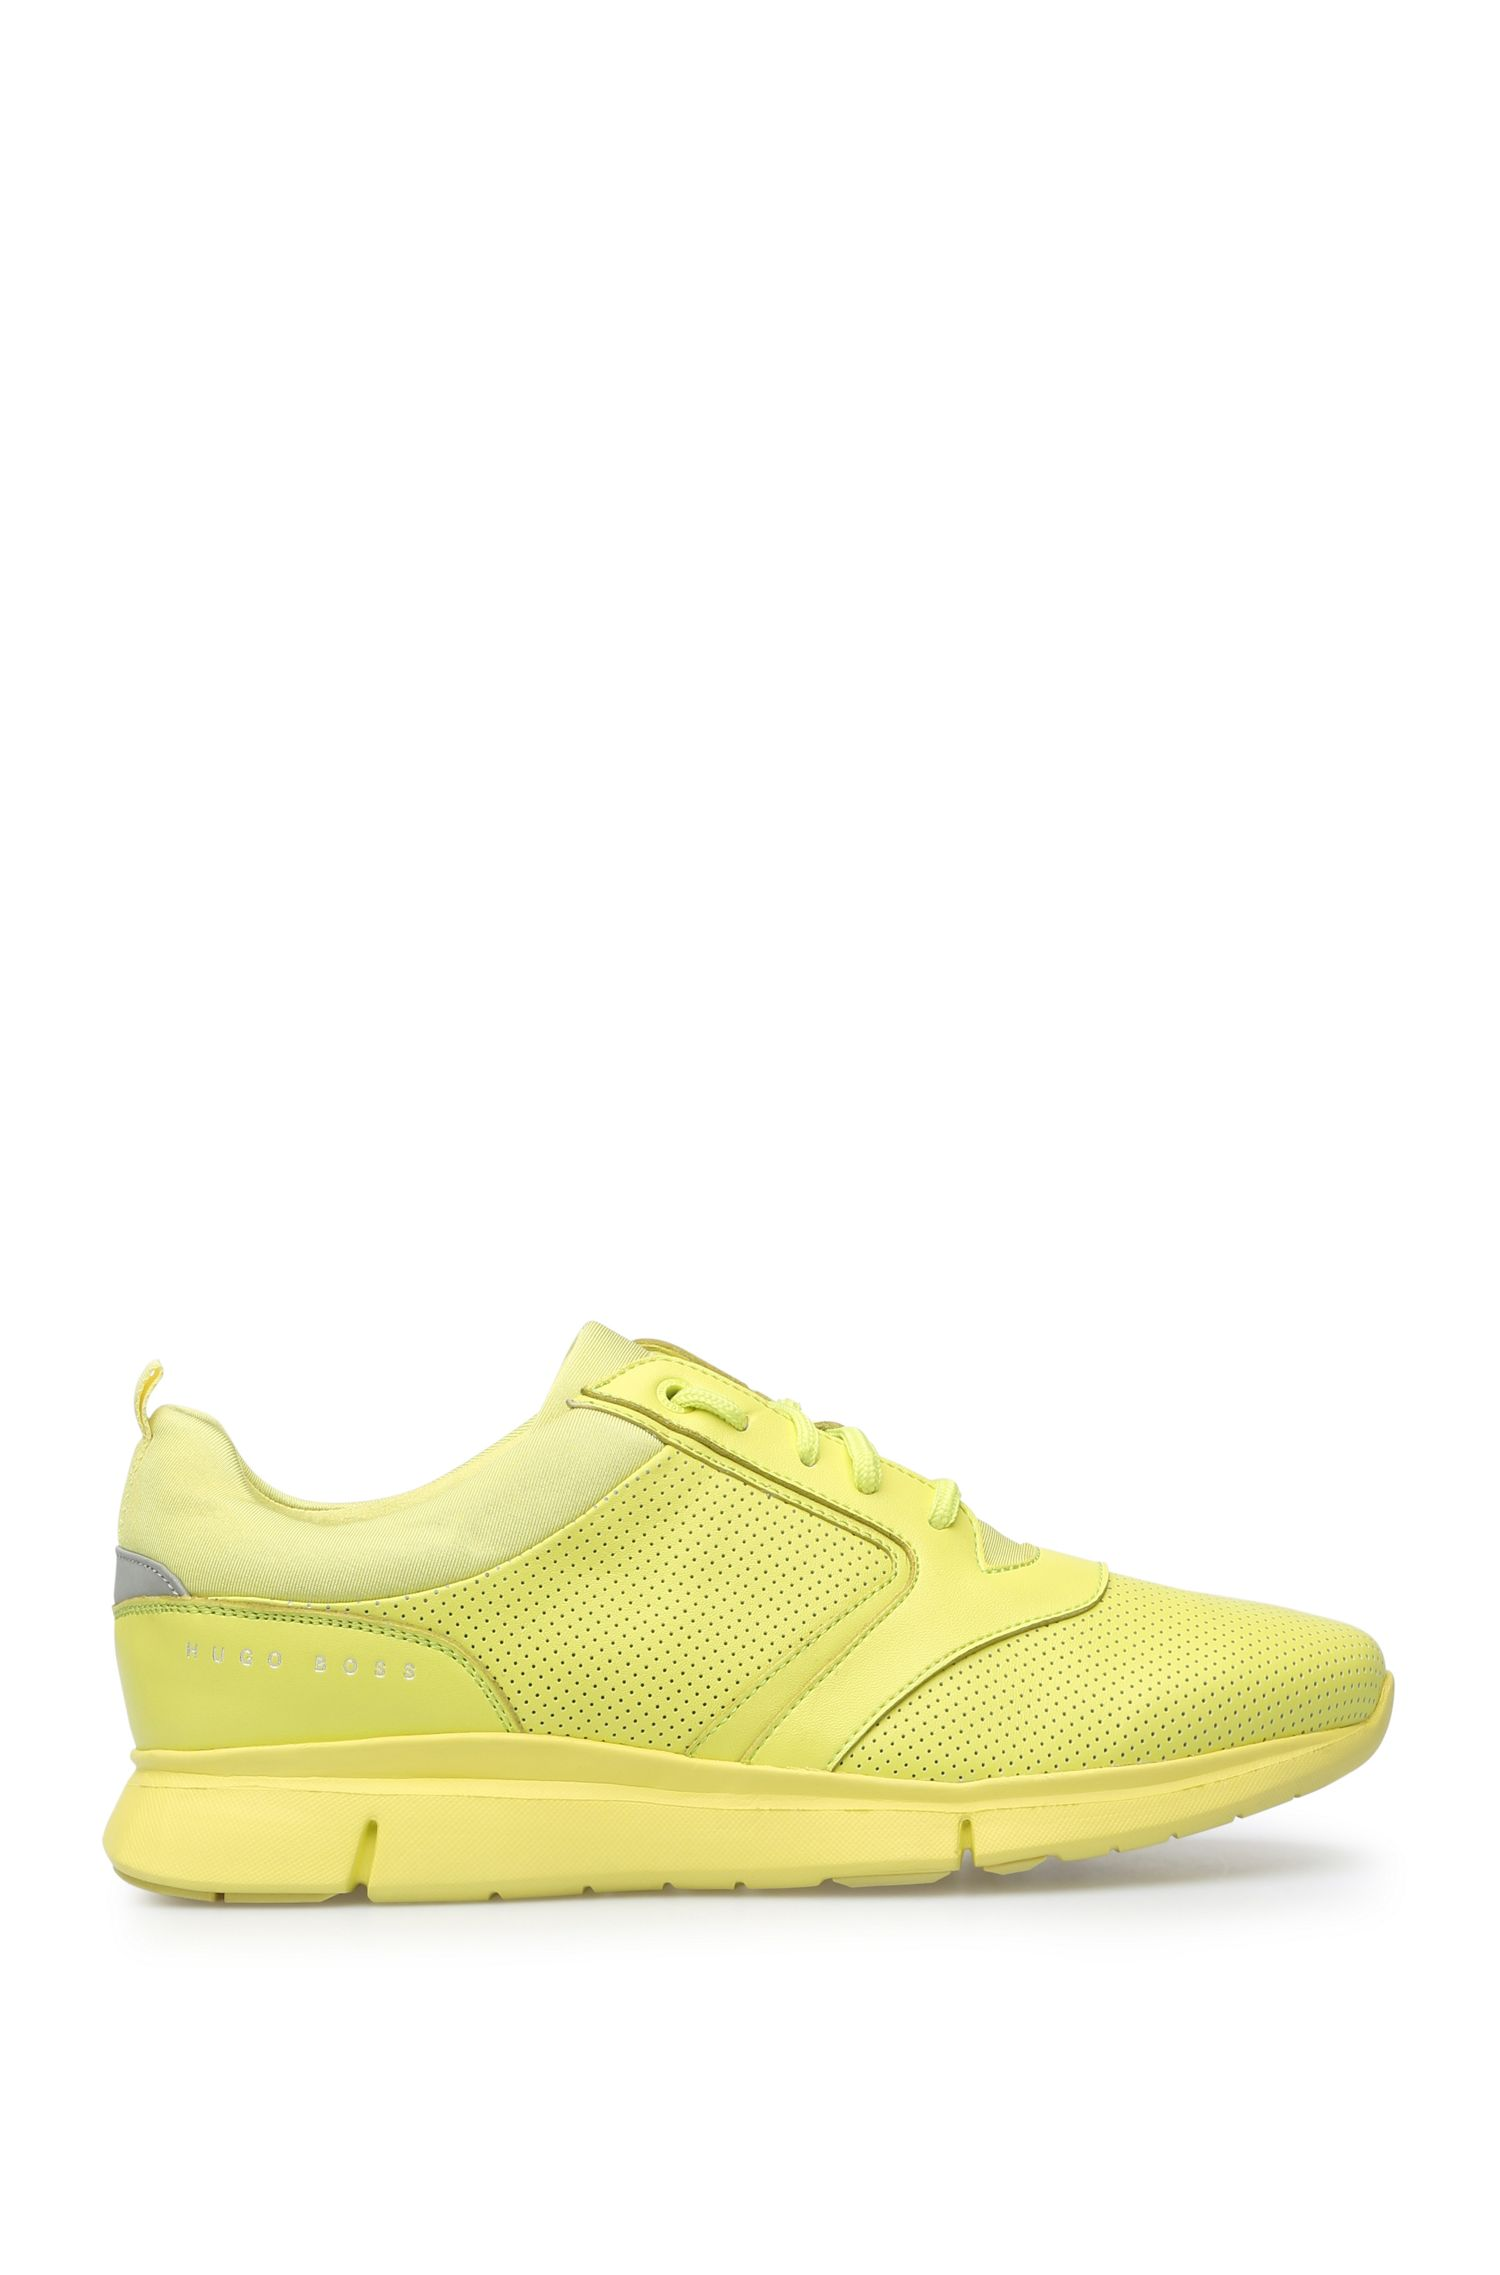 'Gym Runn Itpf' | Leather Peforated Running Sneakers